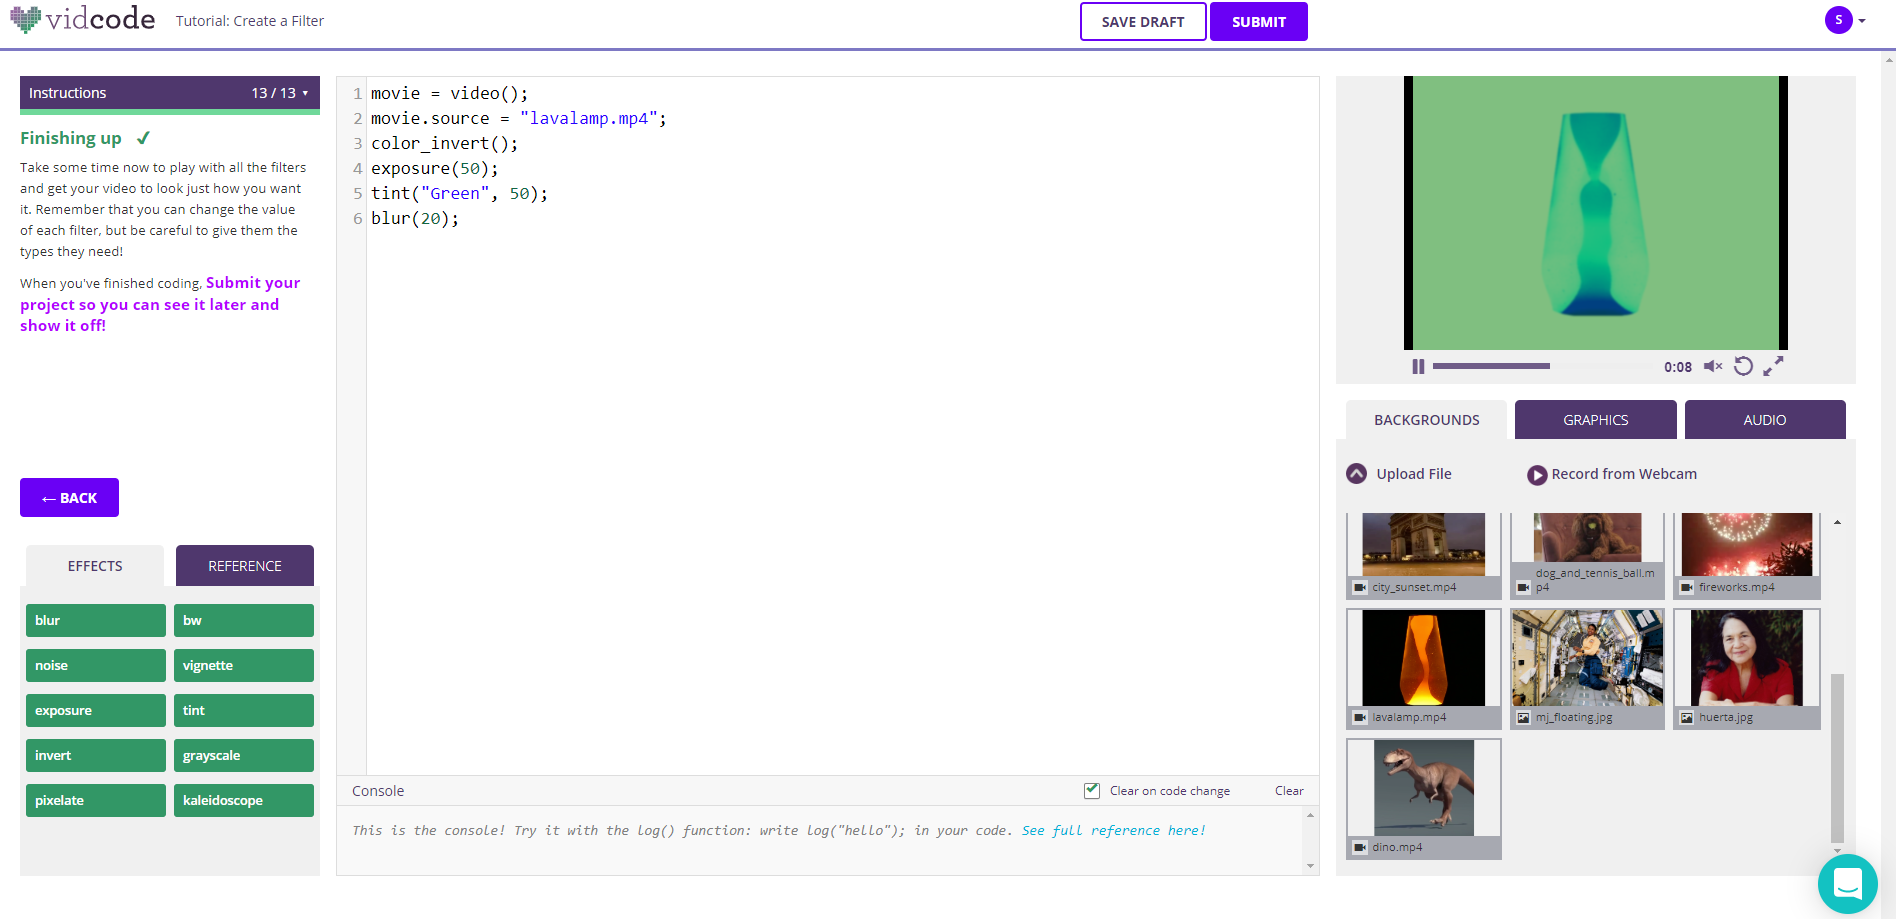 Screenshot of completed create a filter project on Vidcode website